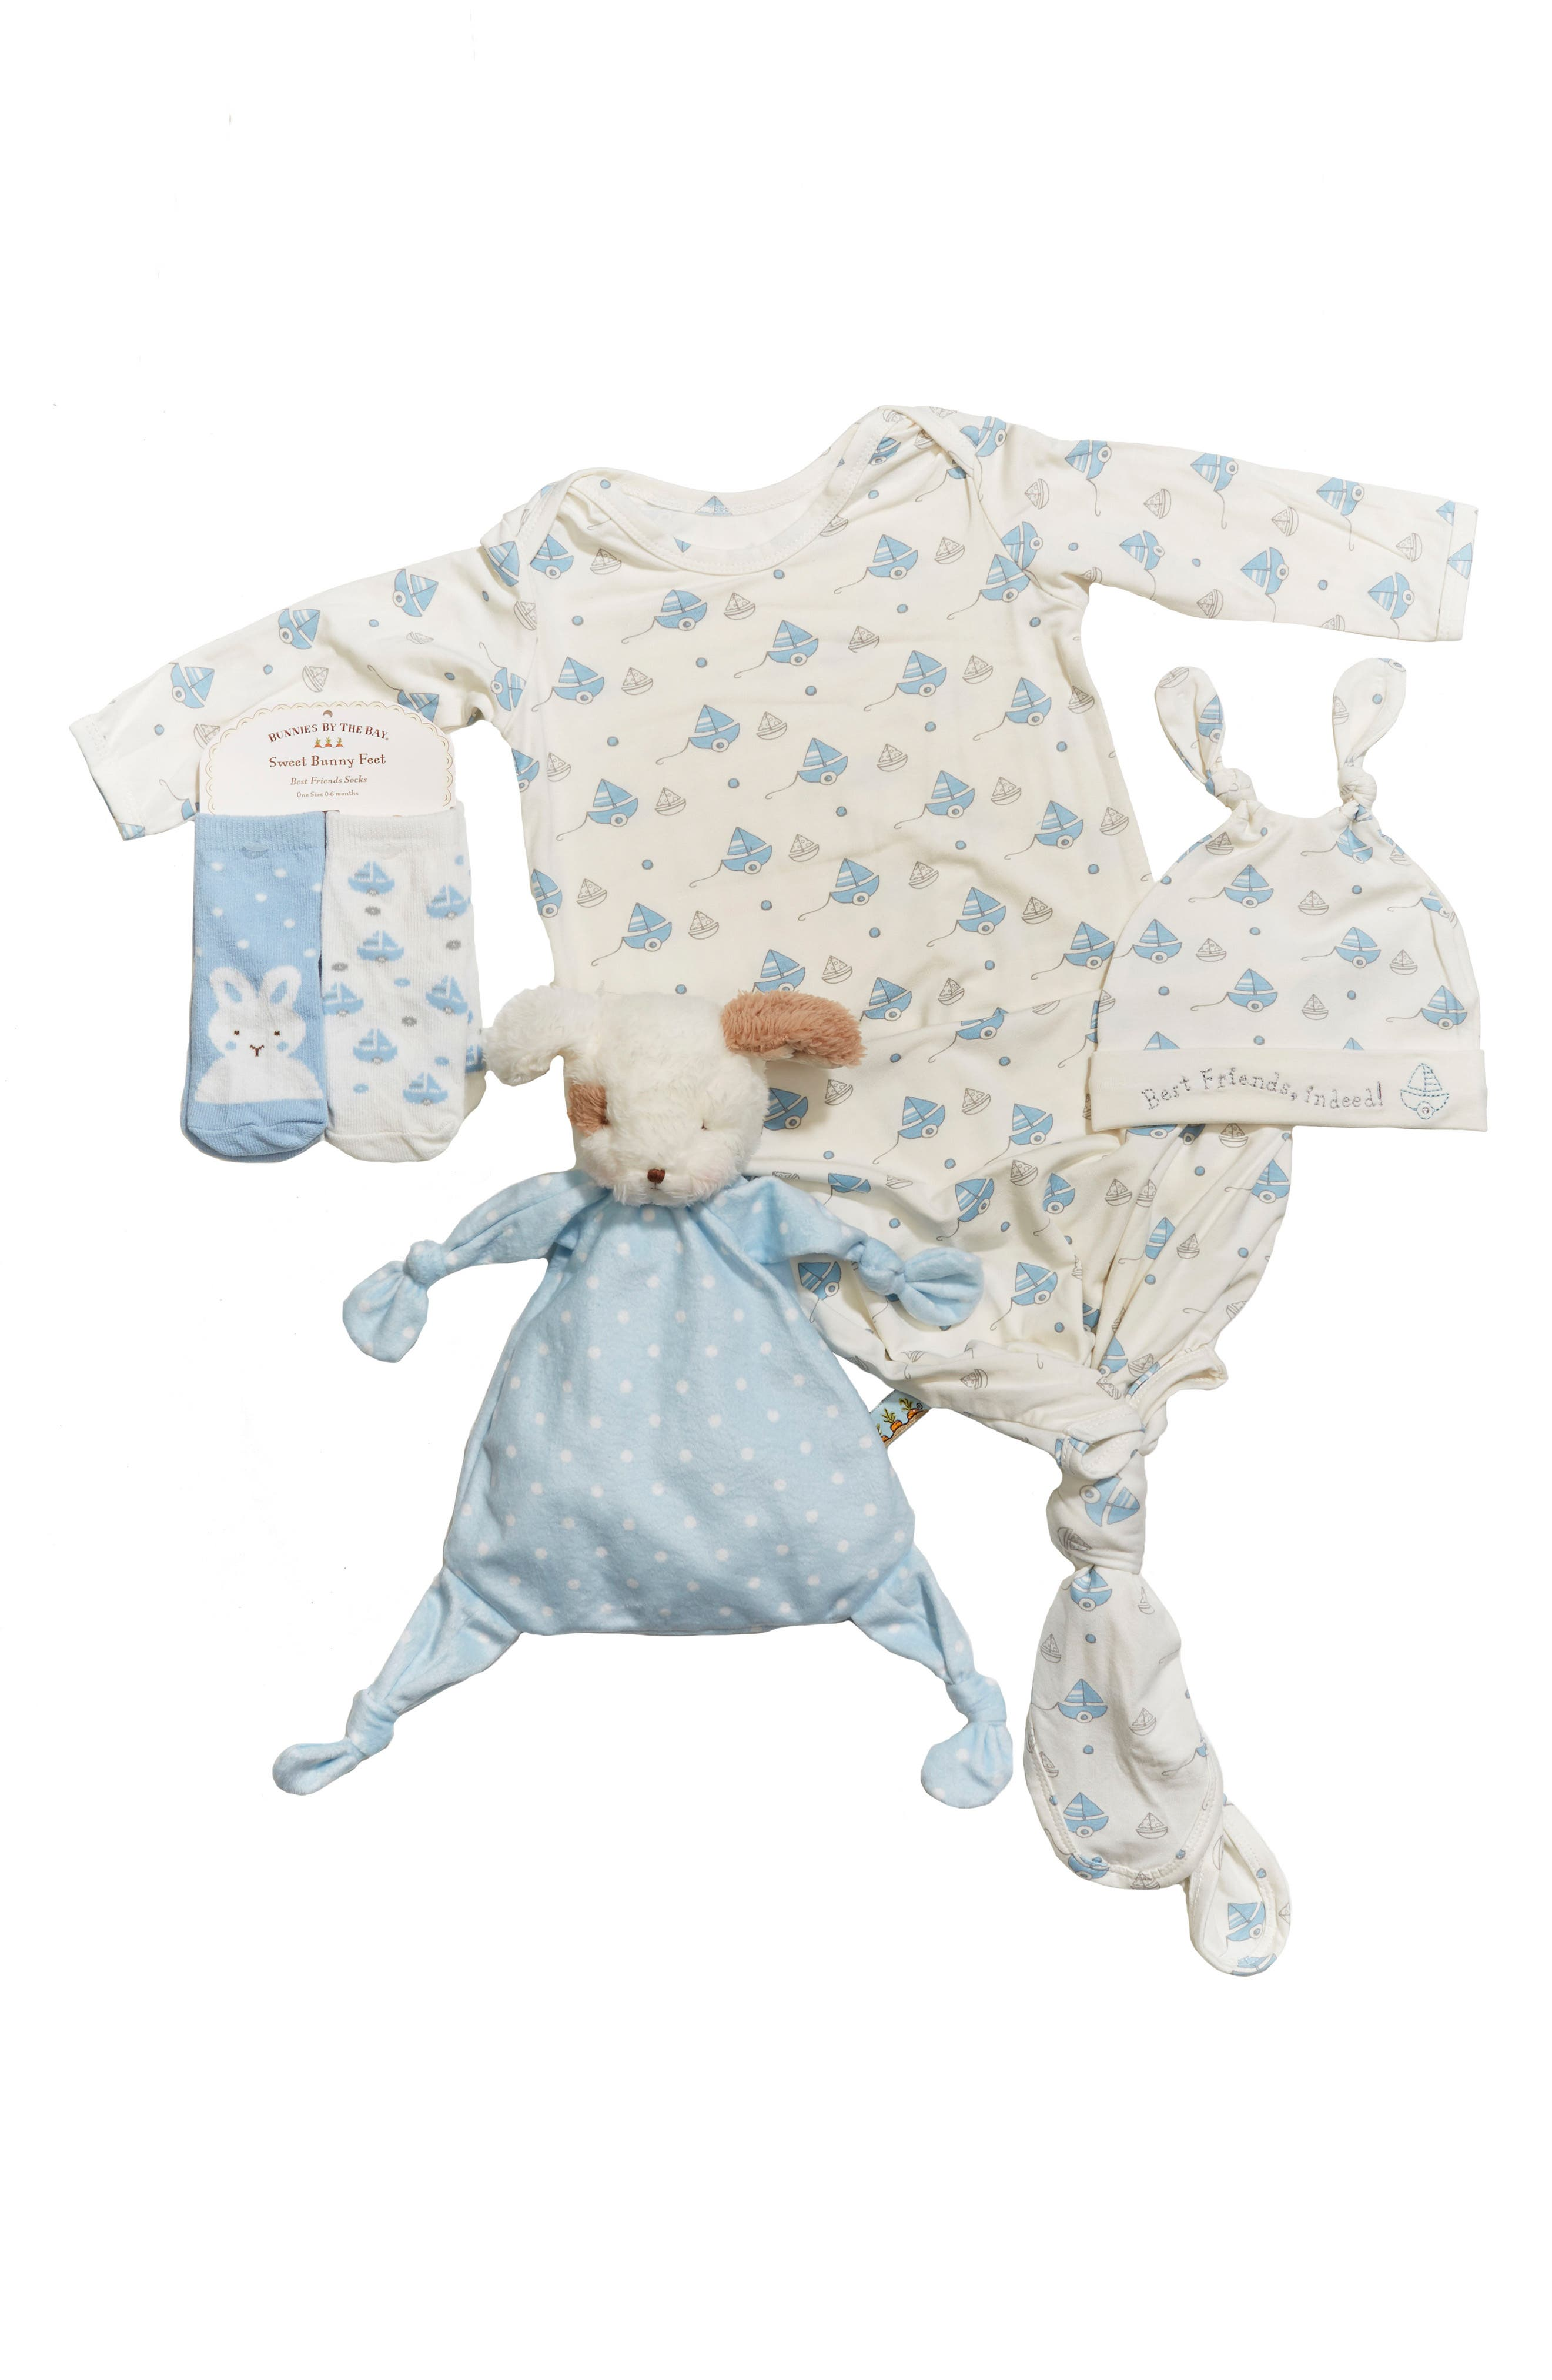 Main Image - Bunnies By The Bay Gown, Hat, Socks & Lovey Set (Baby Boys)